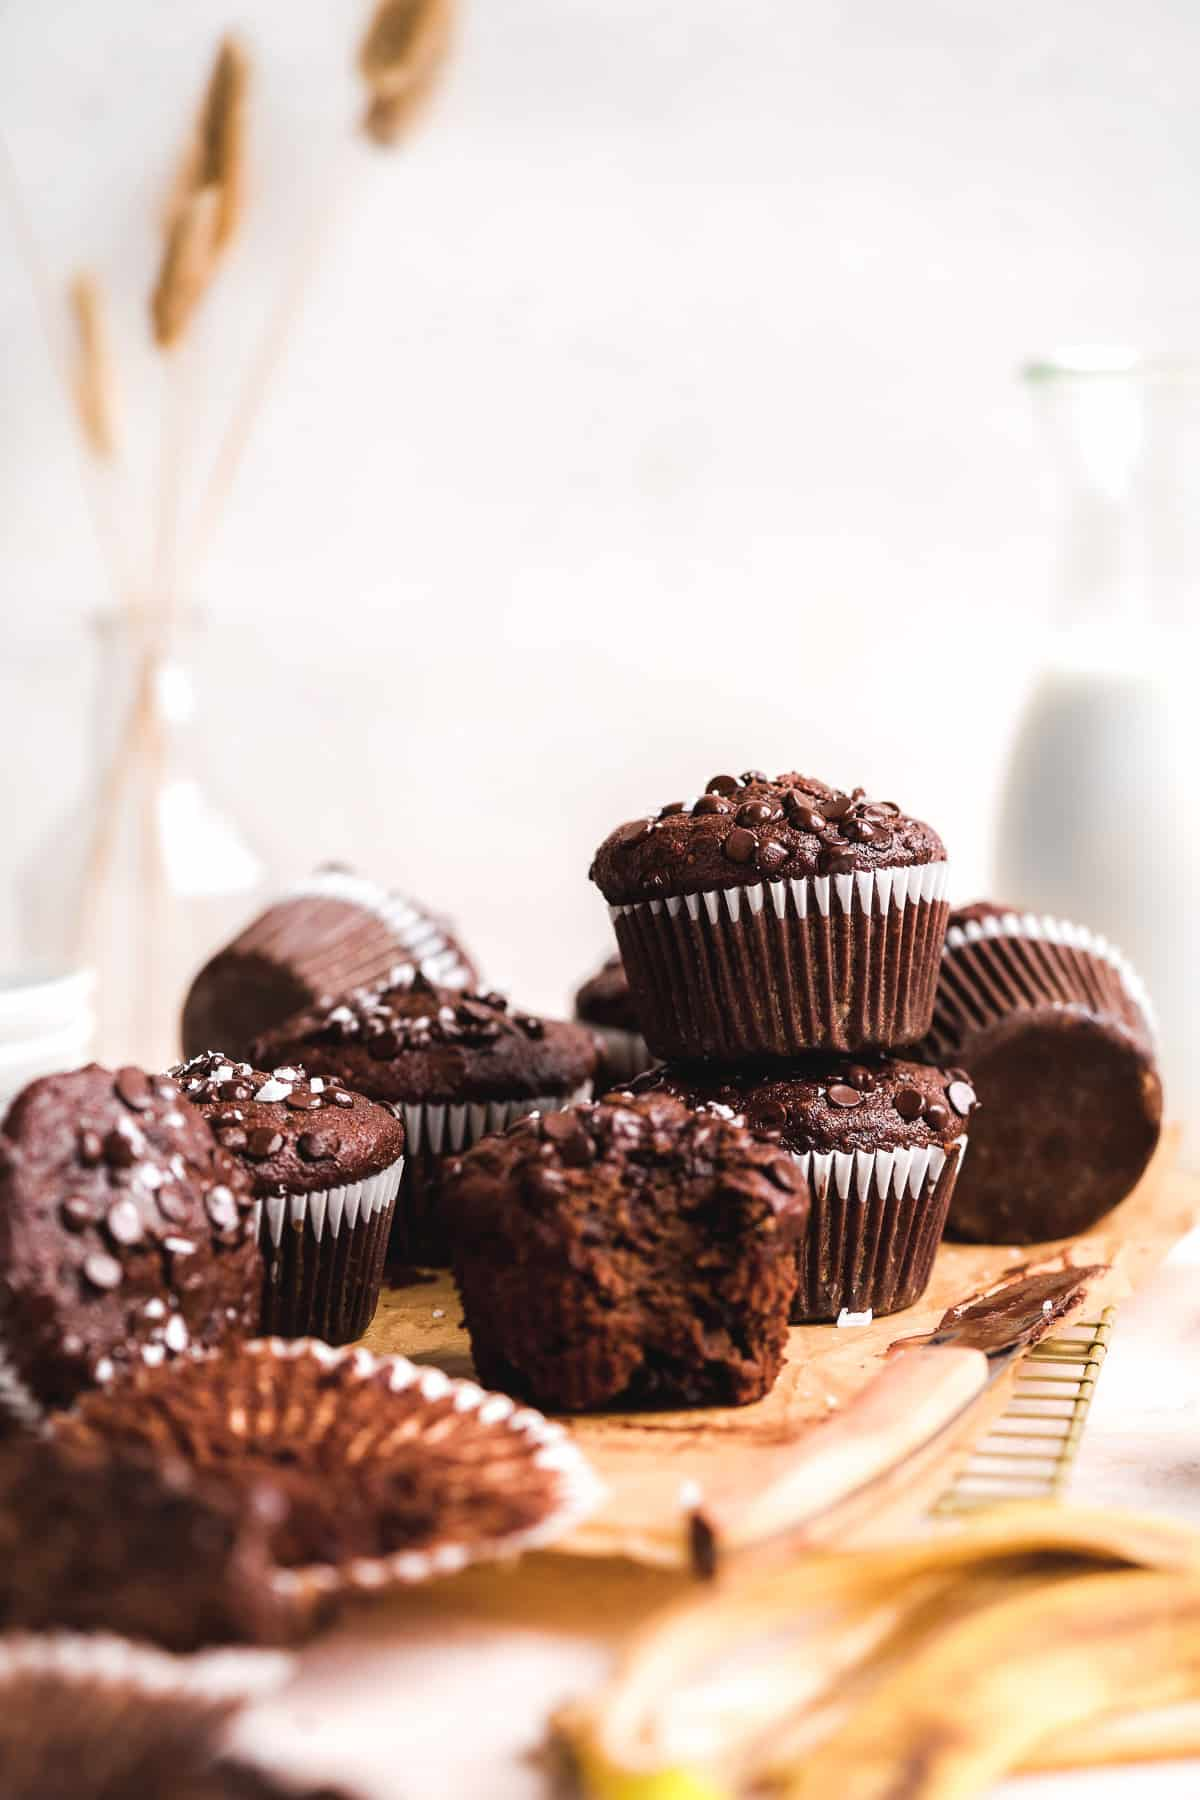 Chocolate muffins stacked on top of each other and scattered on cooling rack.